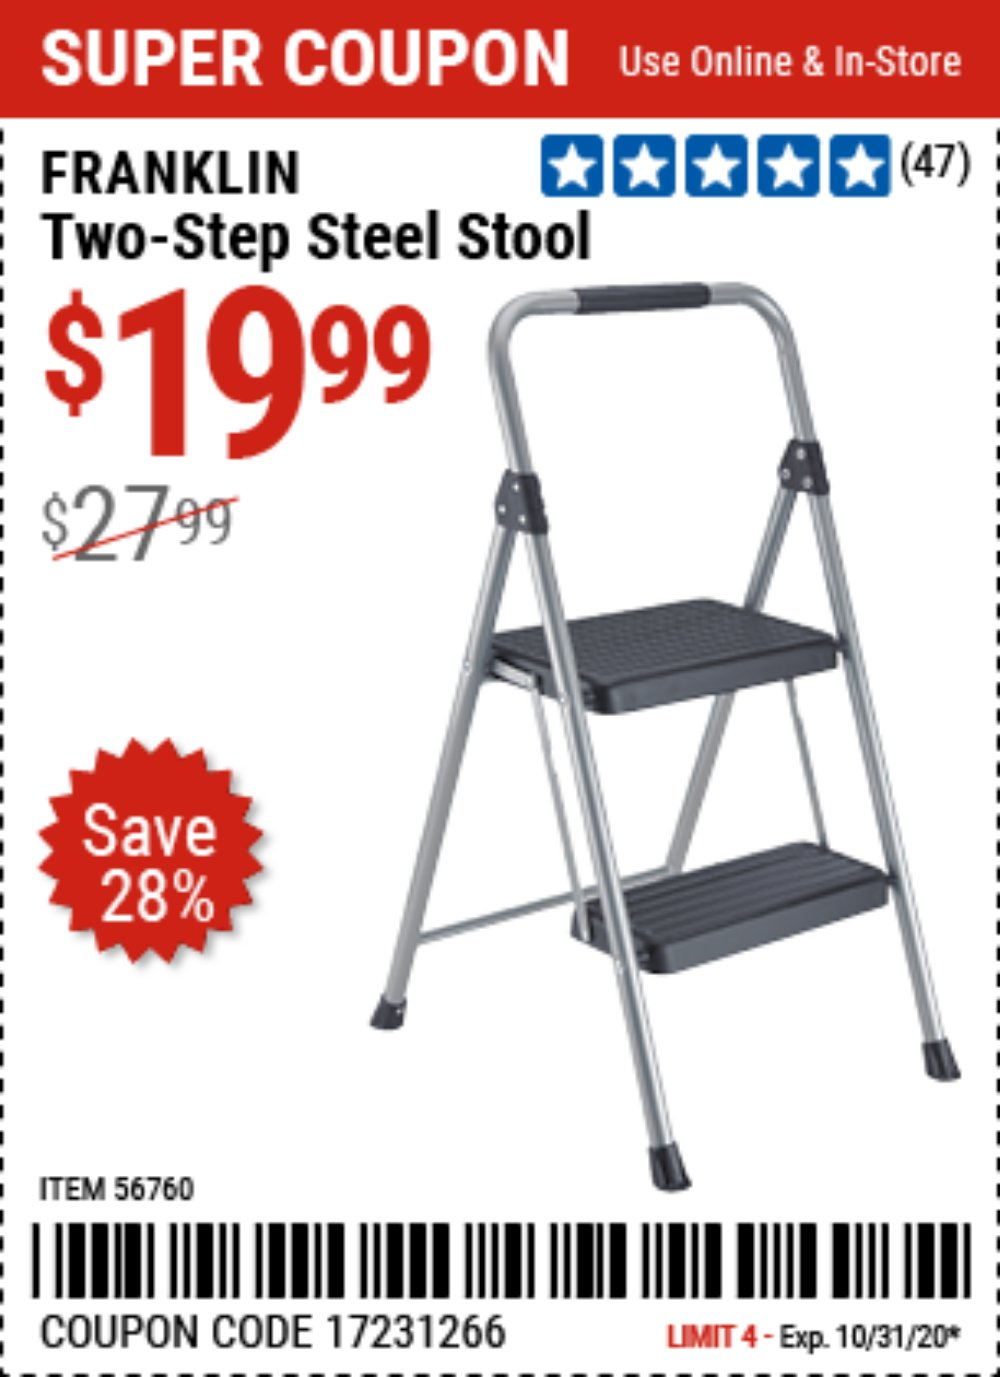 Harbor Freight Coupon, HF Coupons - FRANKLIN Two-Step Stool